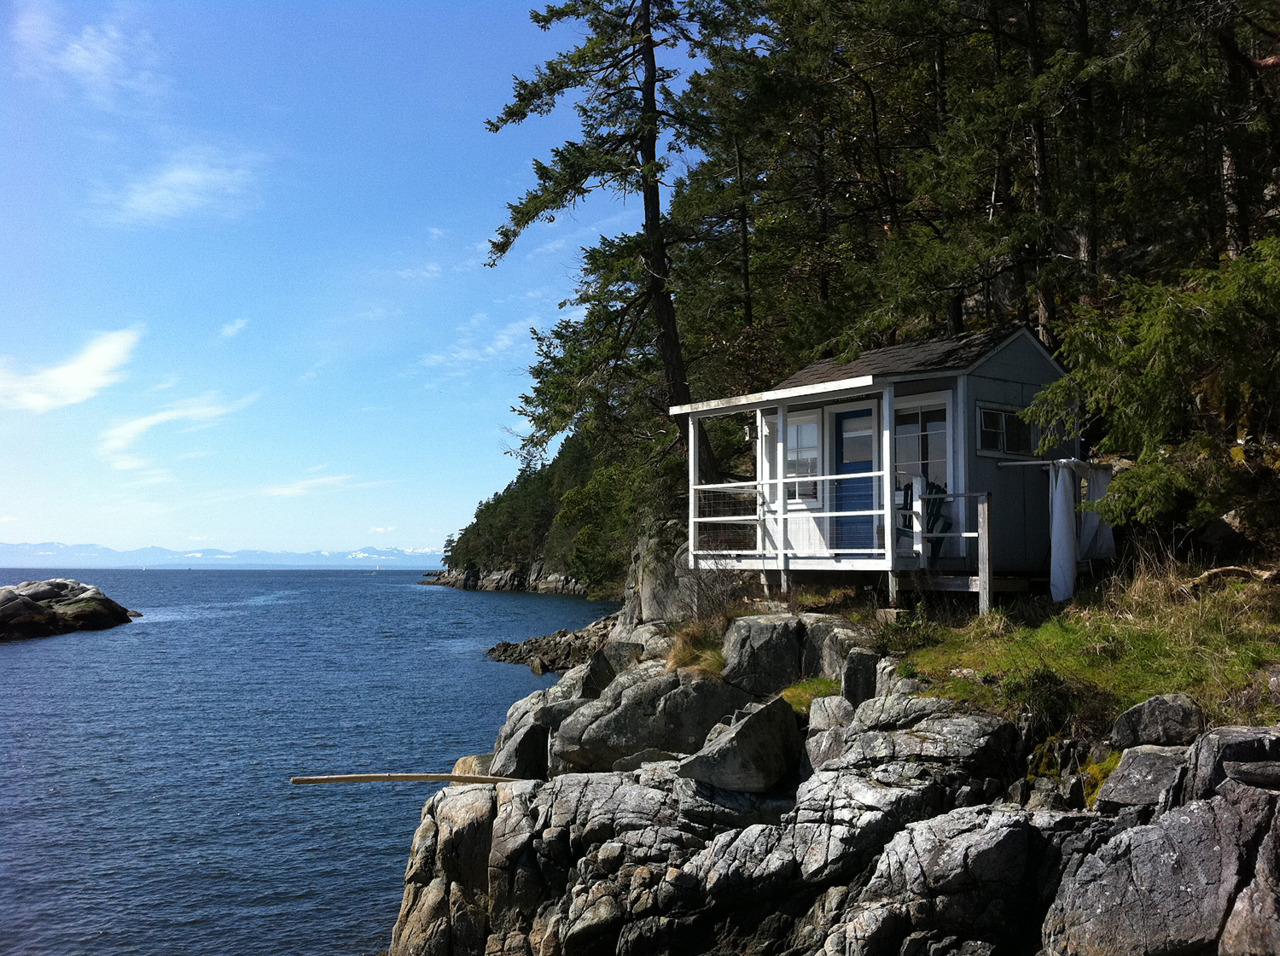 Island cottage north of Vancouver, British Columbia. Submitted by Kim Hadley. (click to enlarge)